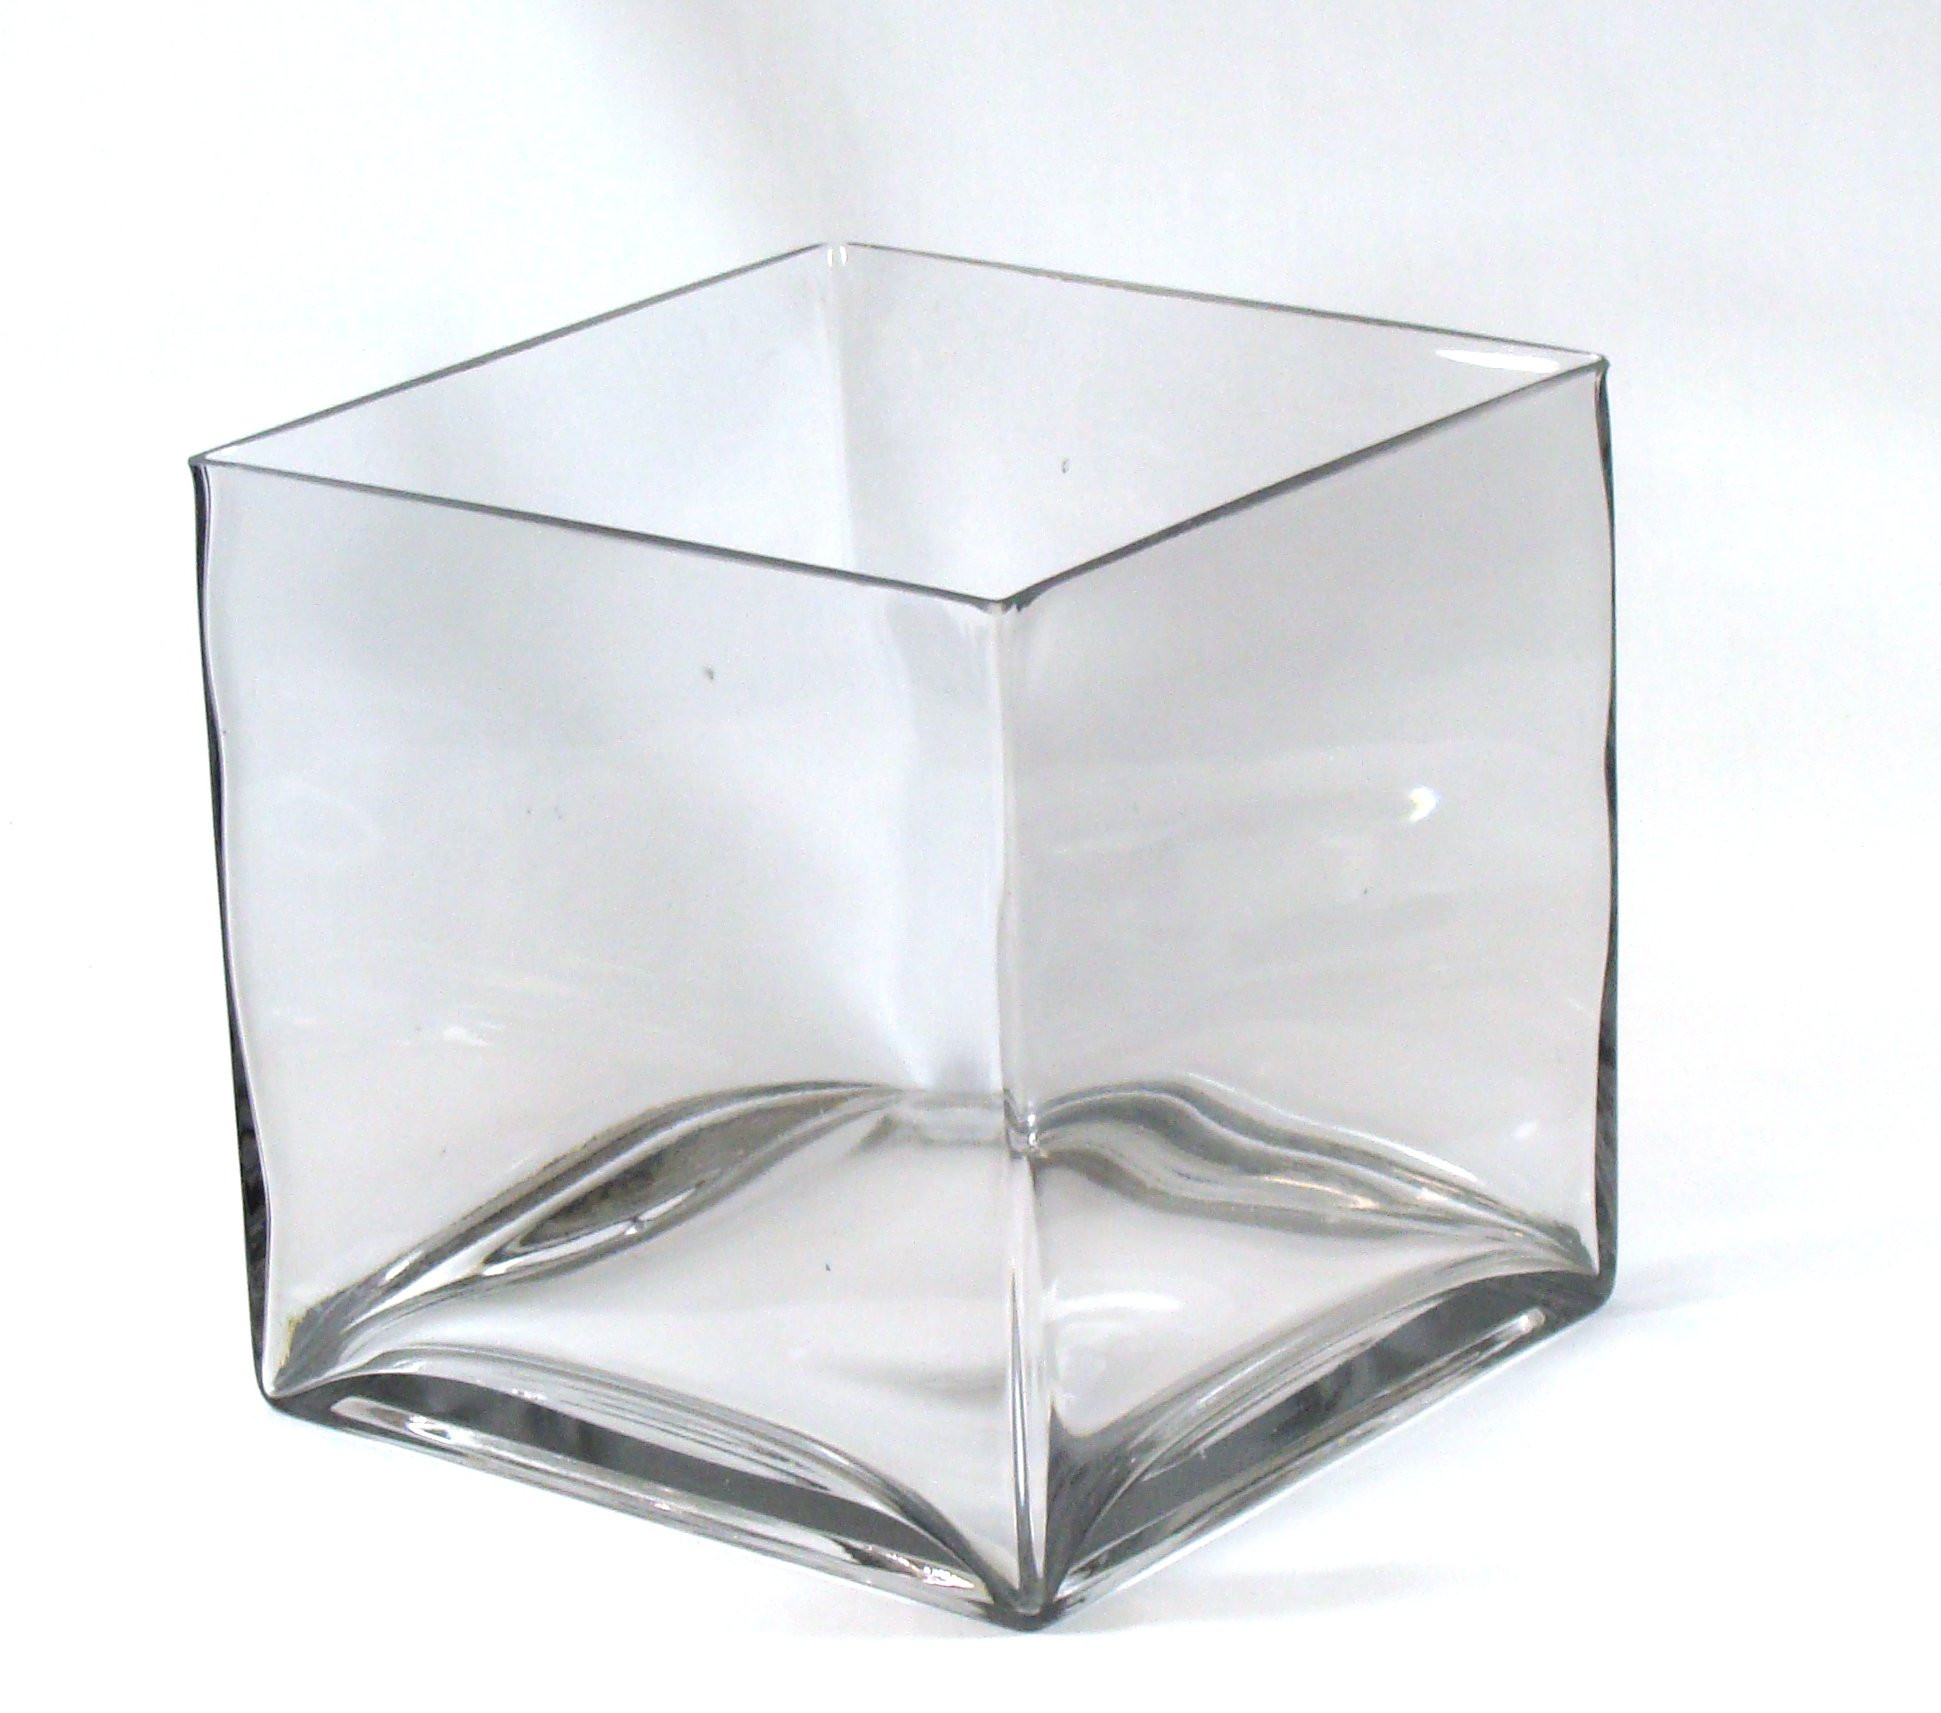 Clear Plastic Beads for Vases Of Buy 8 Inch Round Large Glass Vase 8 Clear Cylinder Oversize with 8 Square Large Glass Vase 8 Inch Clear Cube Oversize Centerpiece 8x8x8 Candleholder